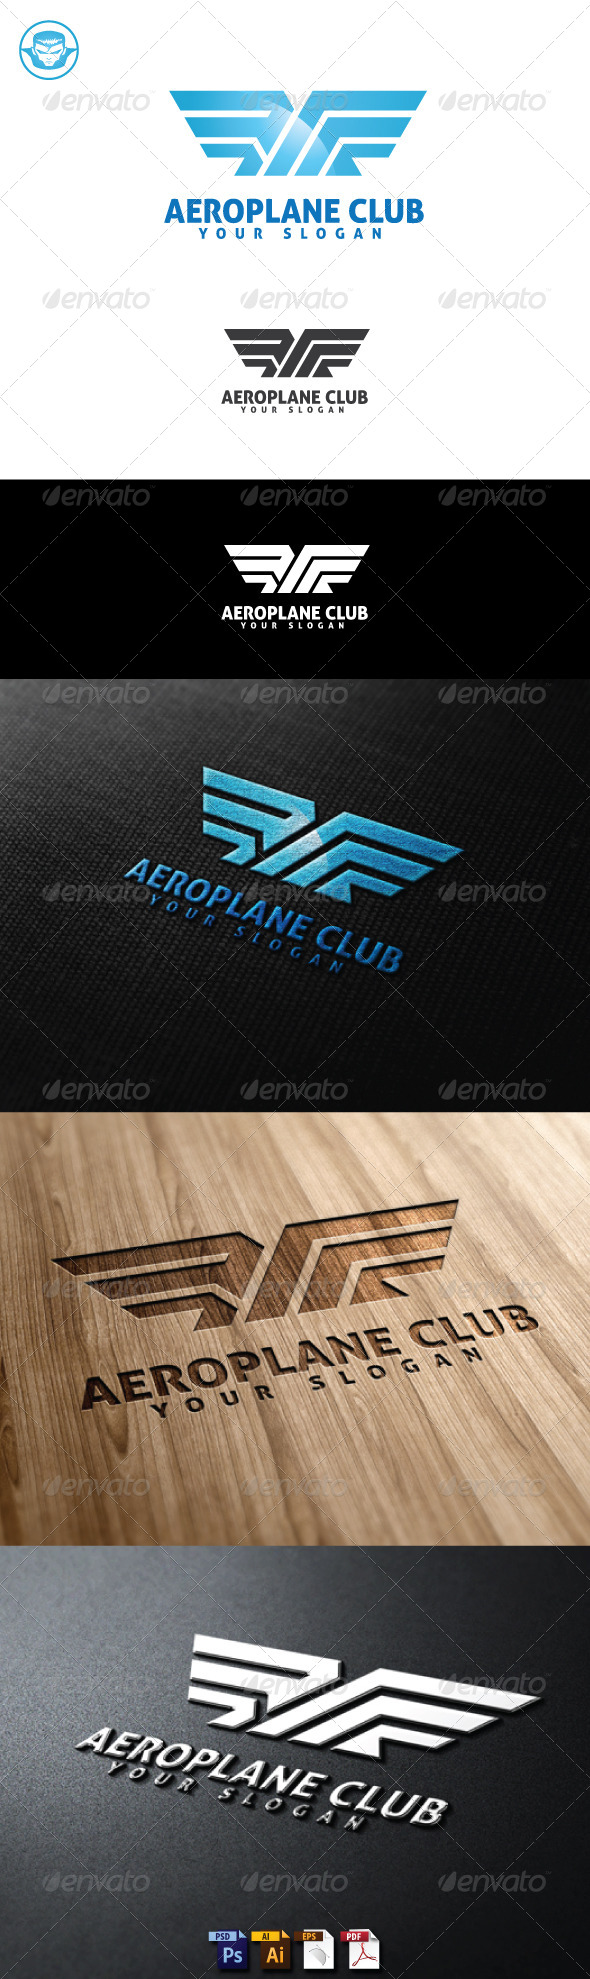 Aeroplane Club Logo Template